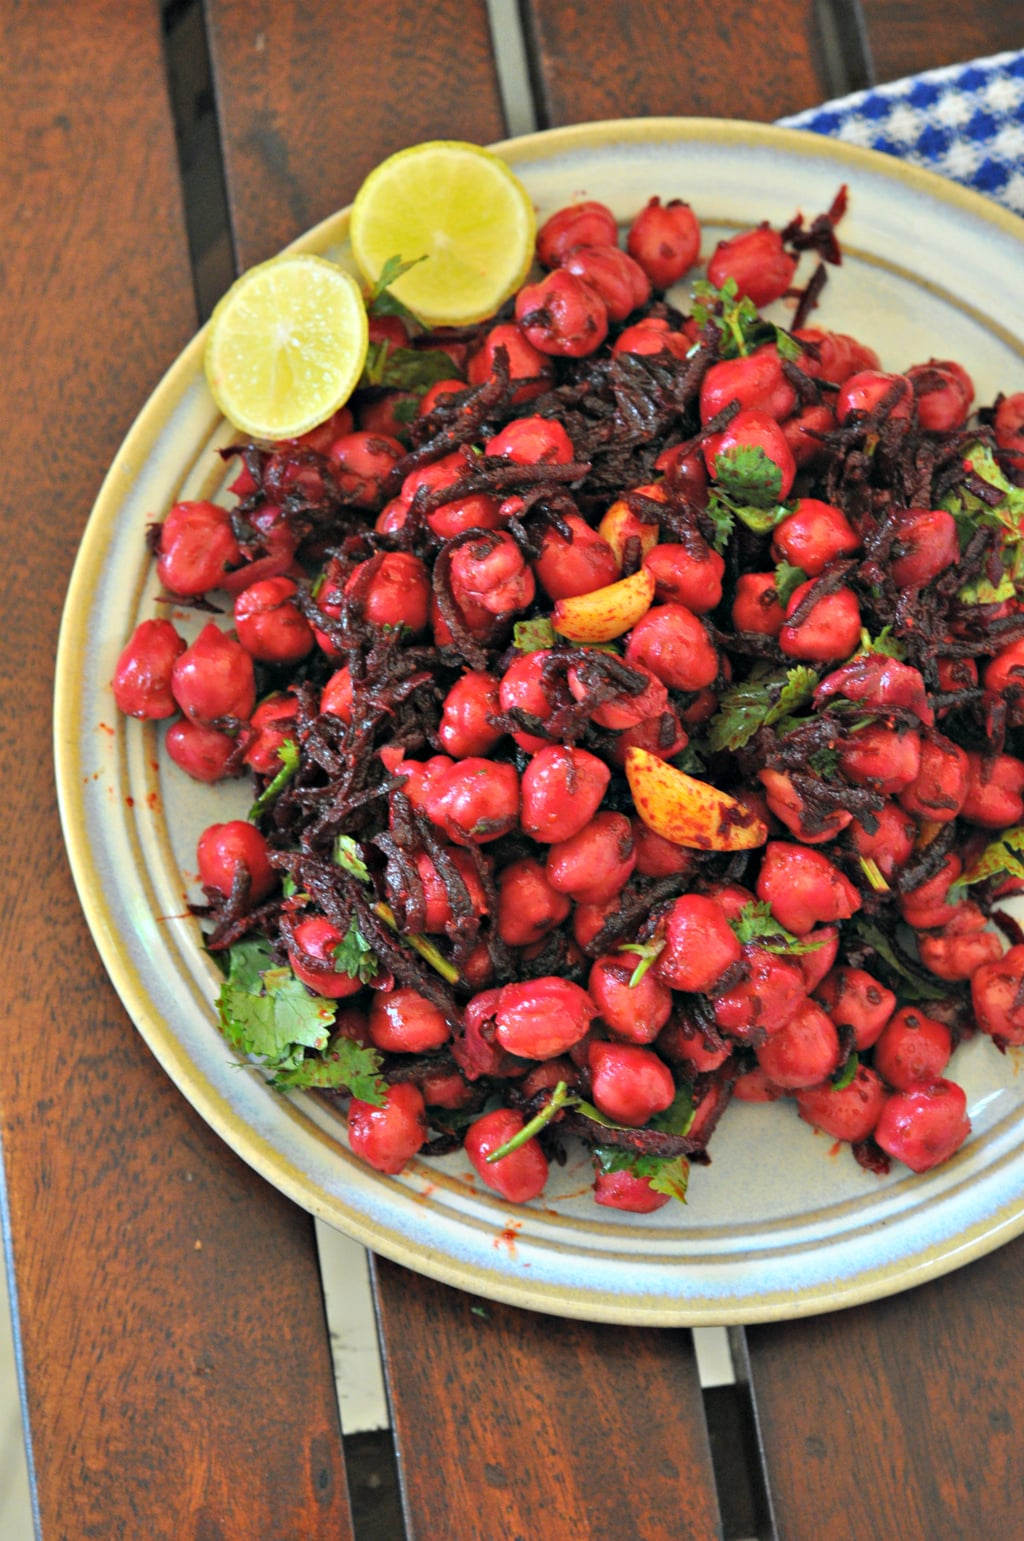 Beetroot & Chickpeas Salad with Burnt Salad